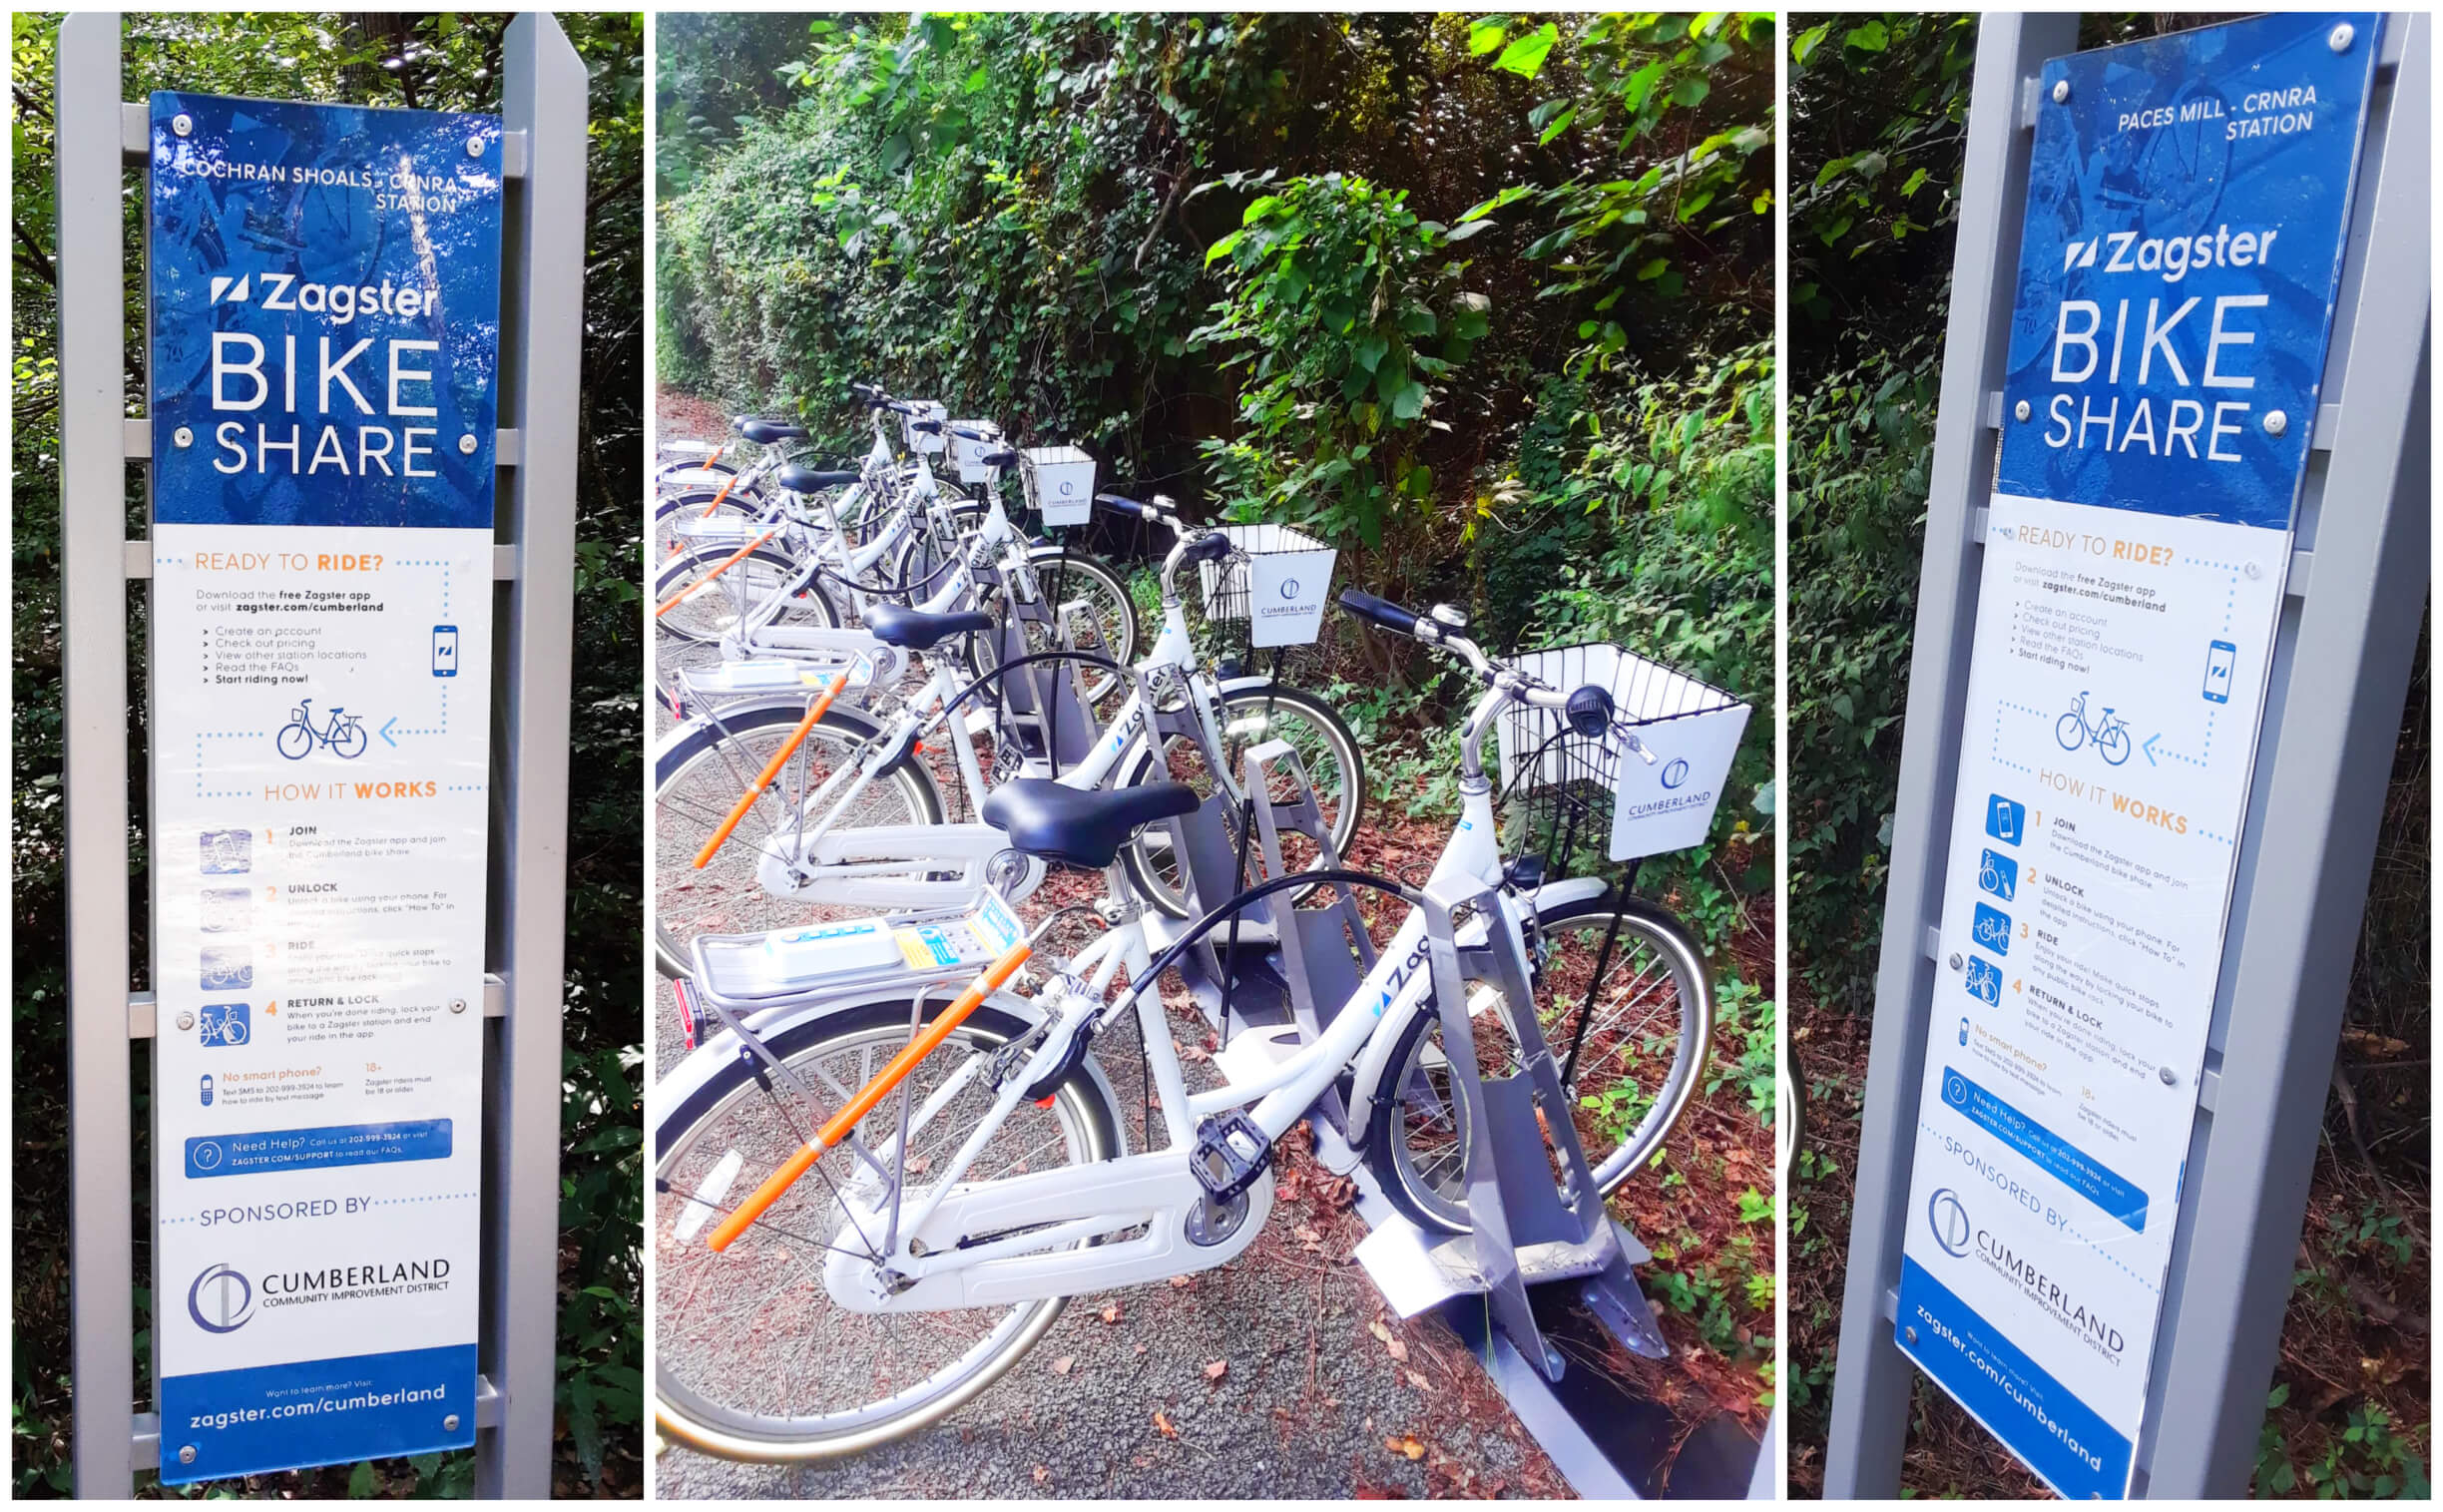 Zagster Bikes at Cochran Shoals Paces Mill CRNRA Station